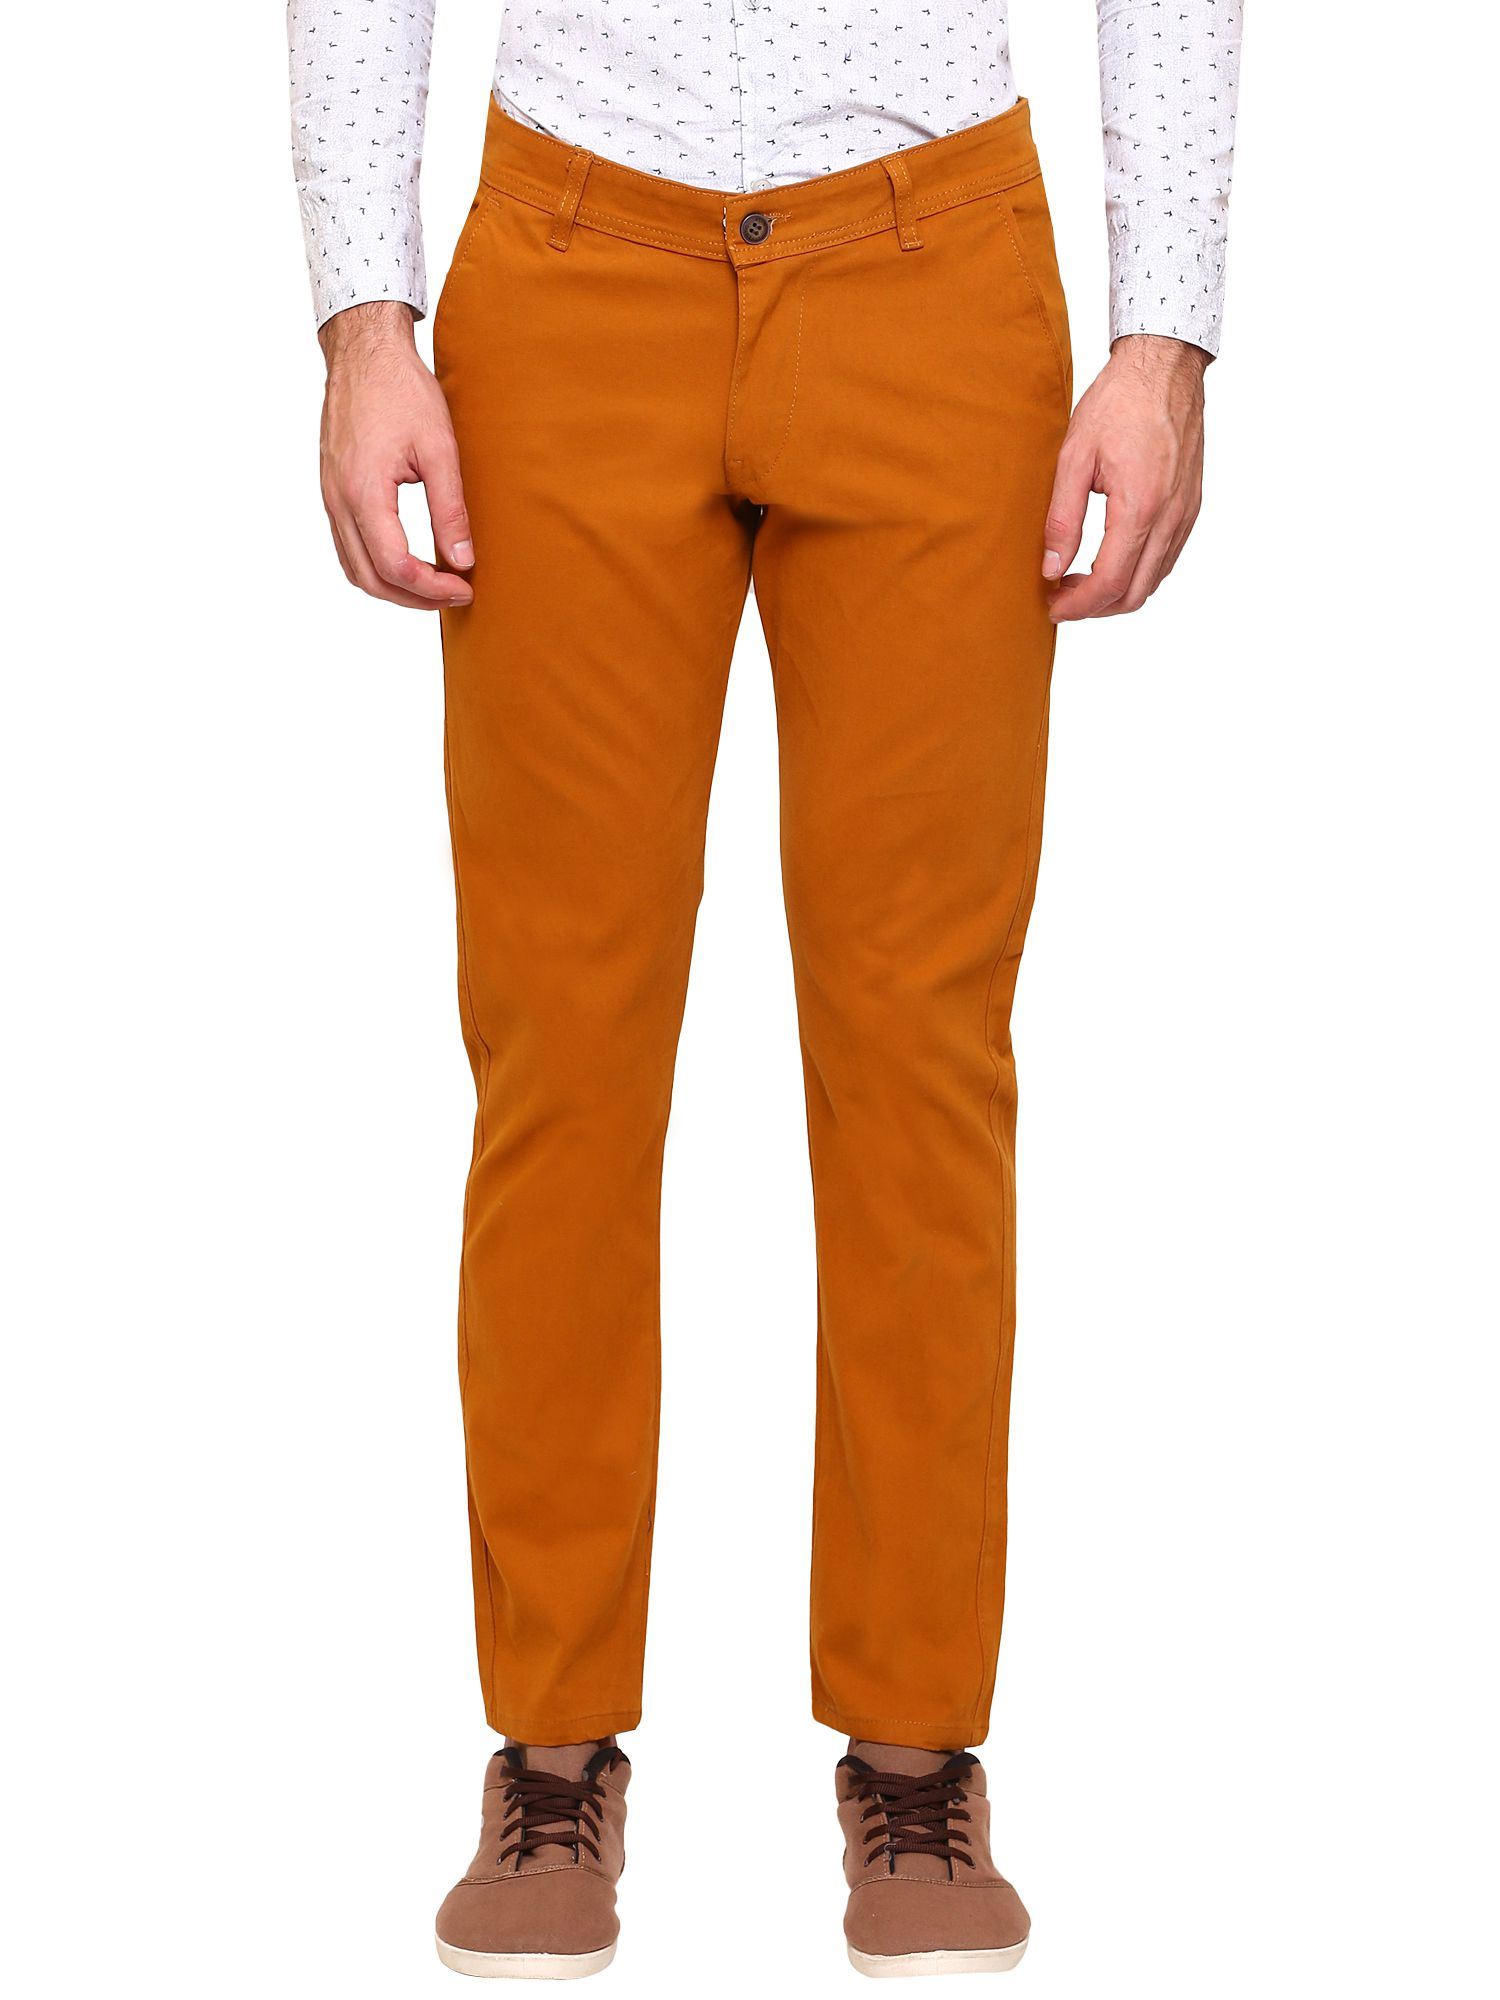 gradely Brown Regular -Fit Flat Trousers